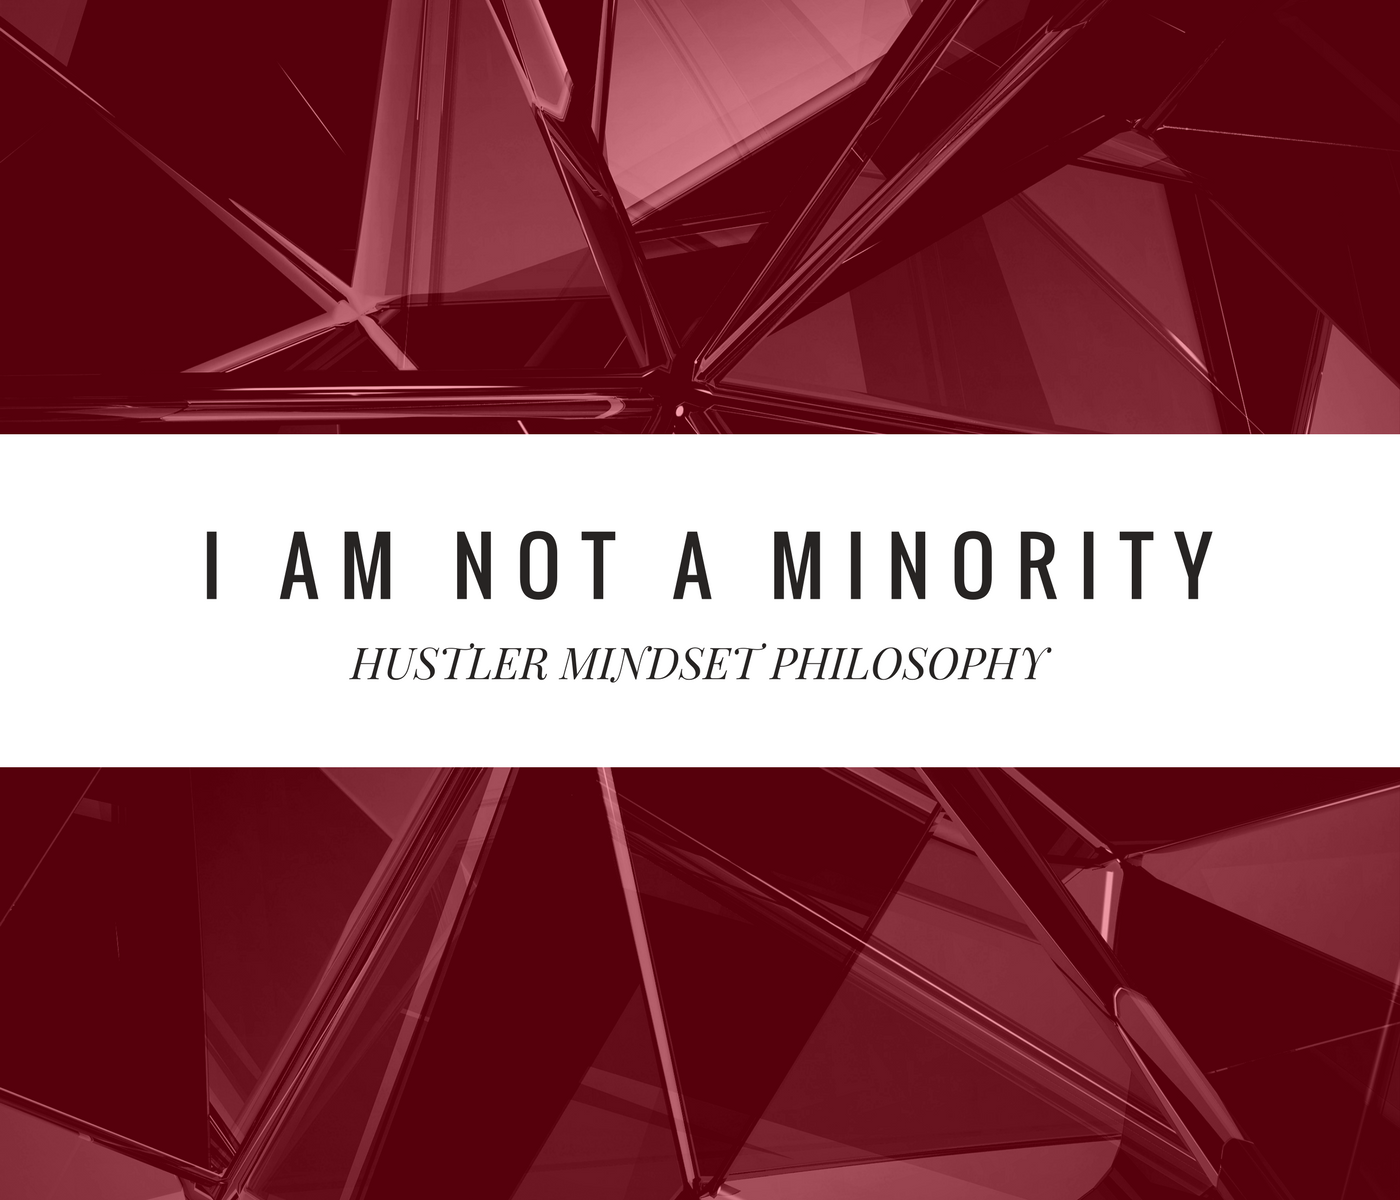 I Am Not a Minority – Hustler Mindset Philosophy